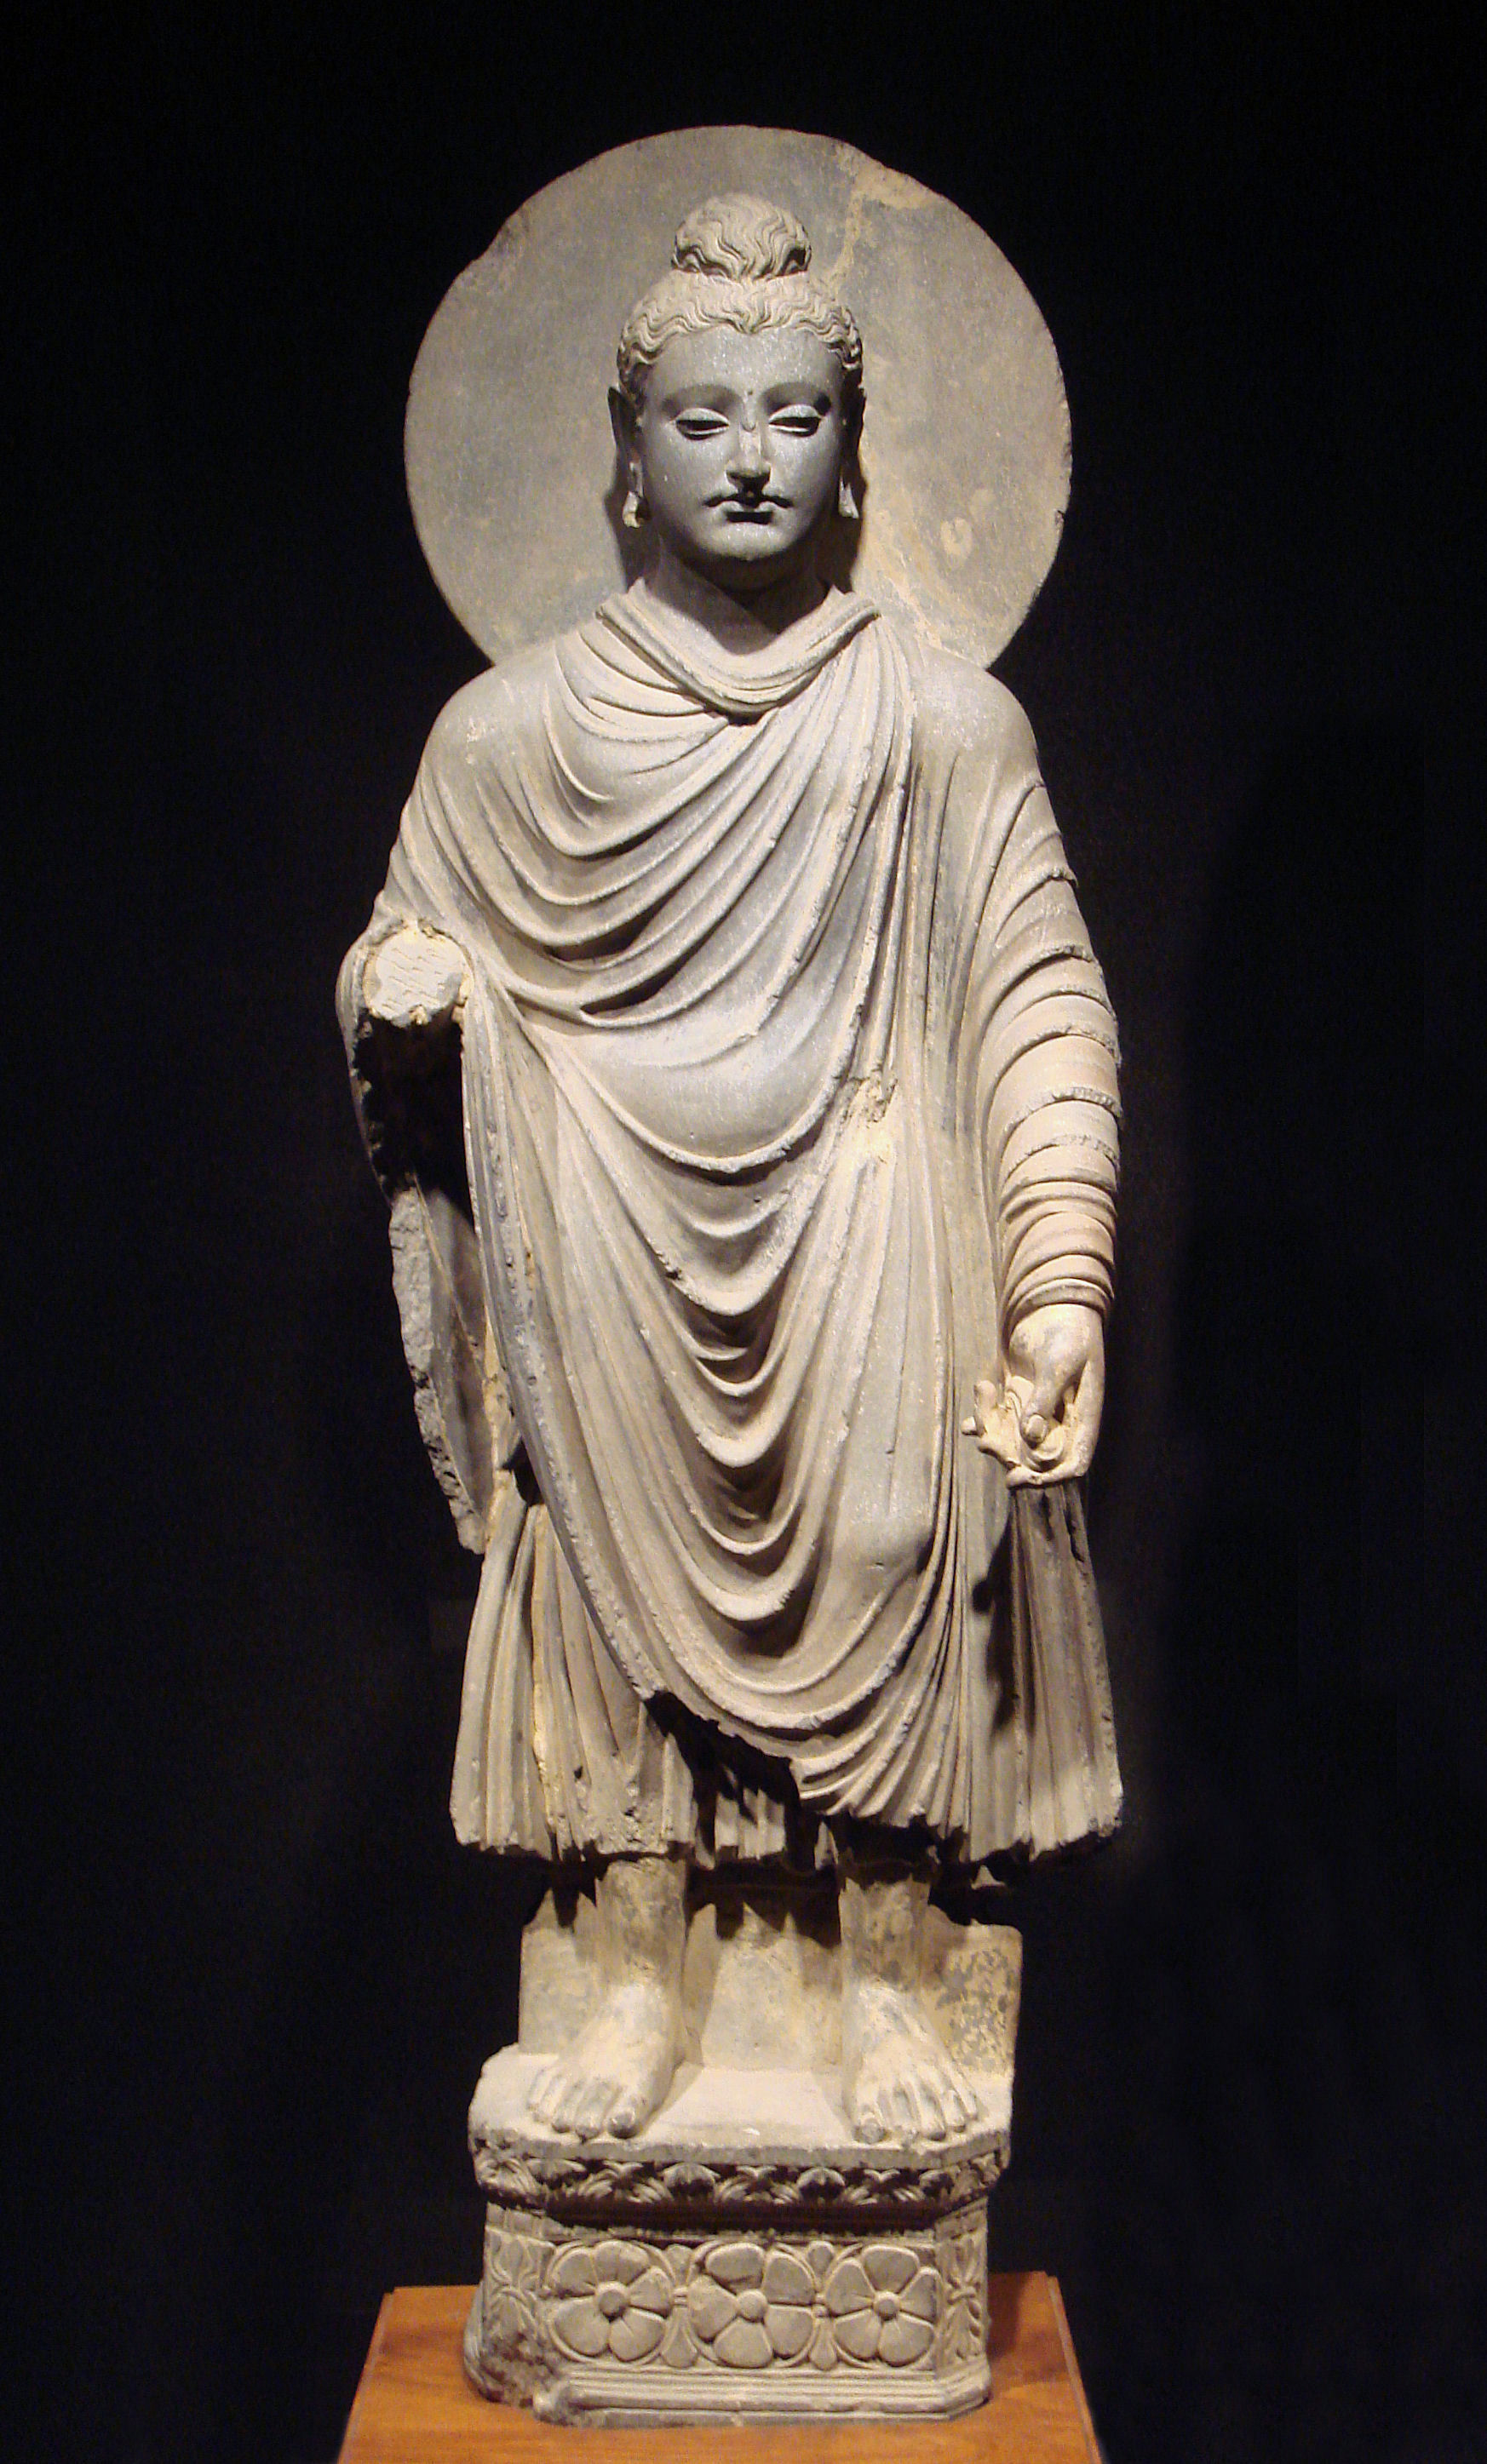 Buddhist culture and pre-Christian Greece[edit]